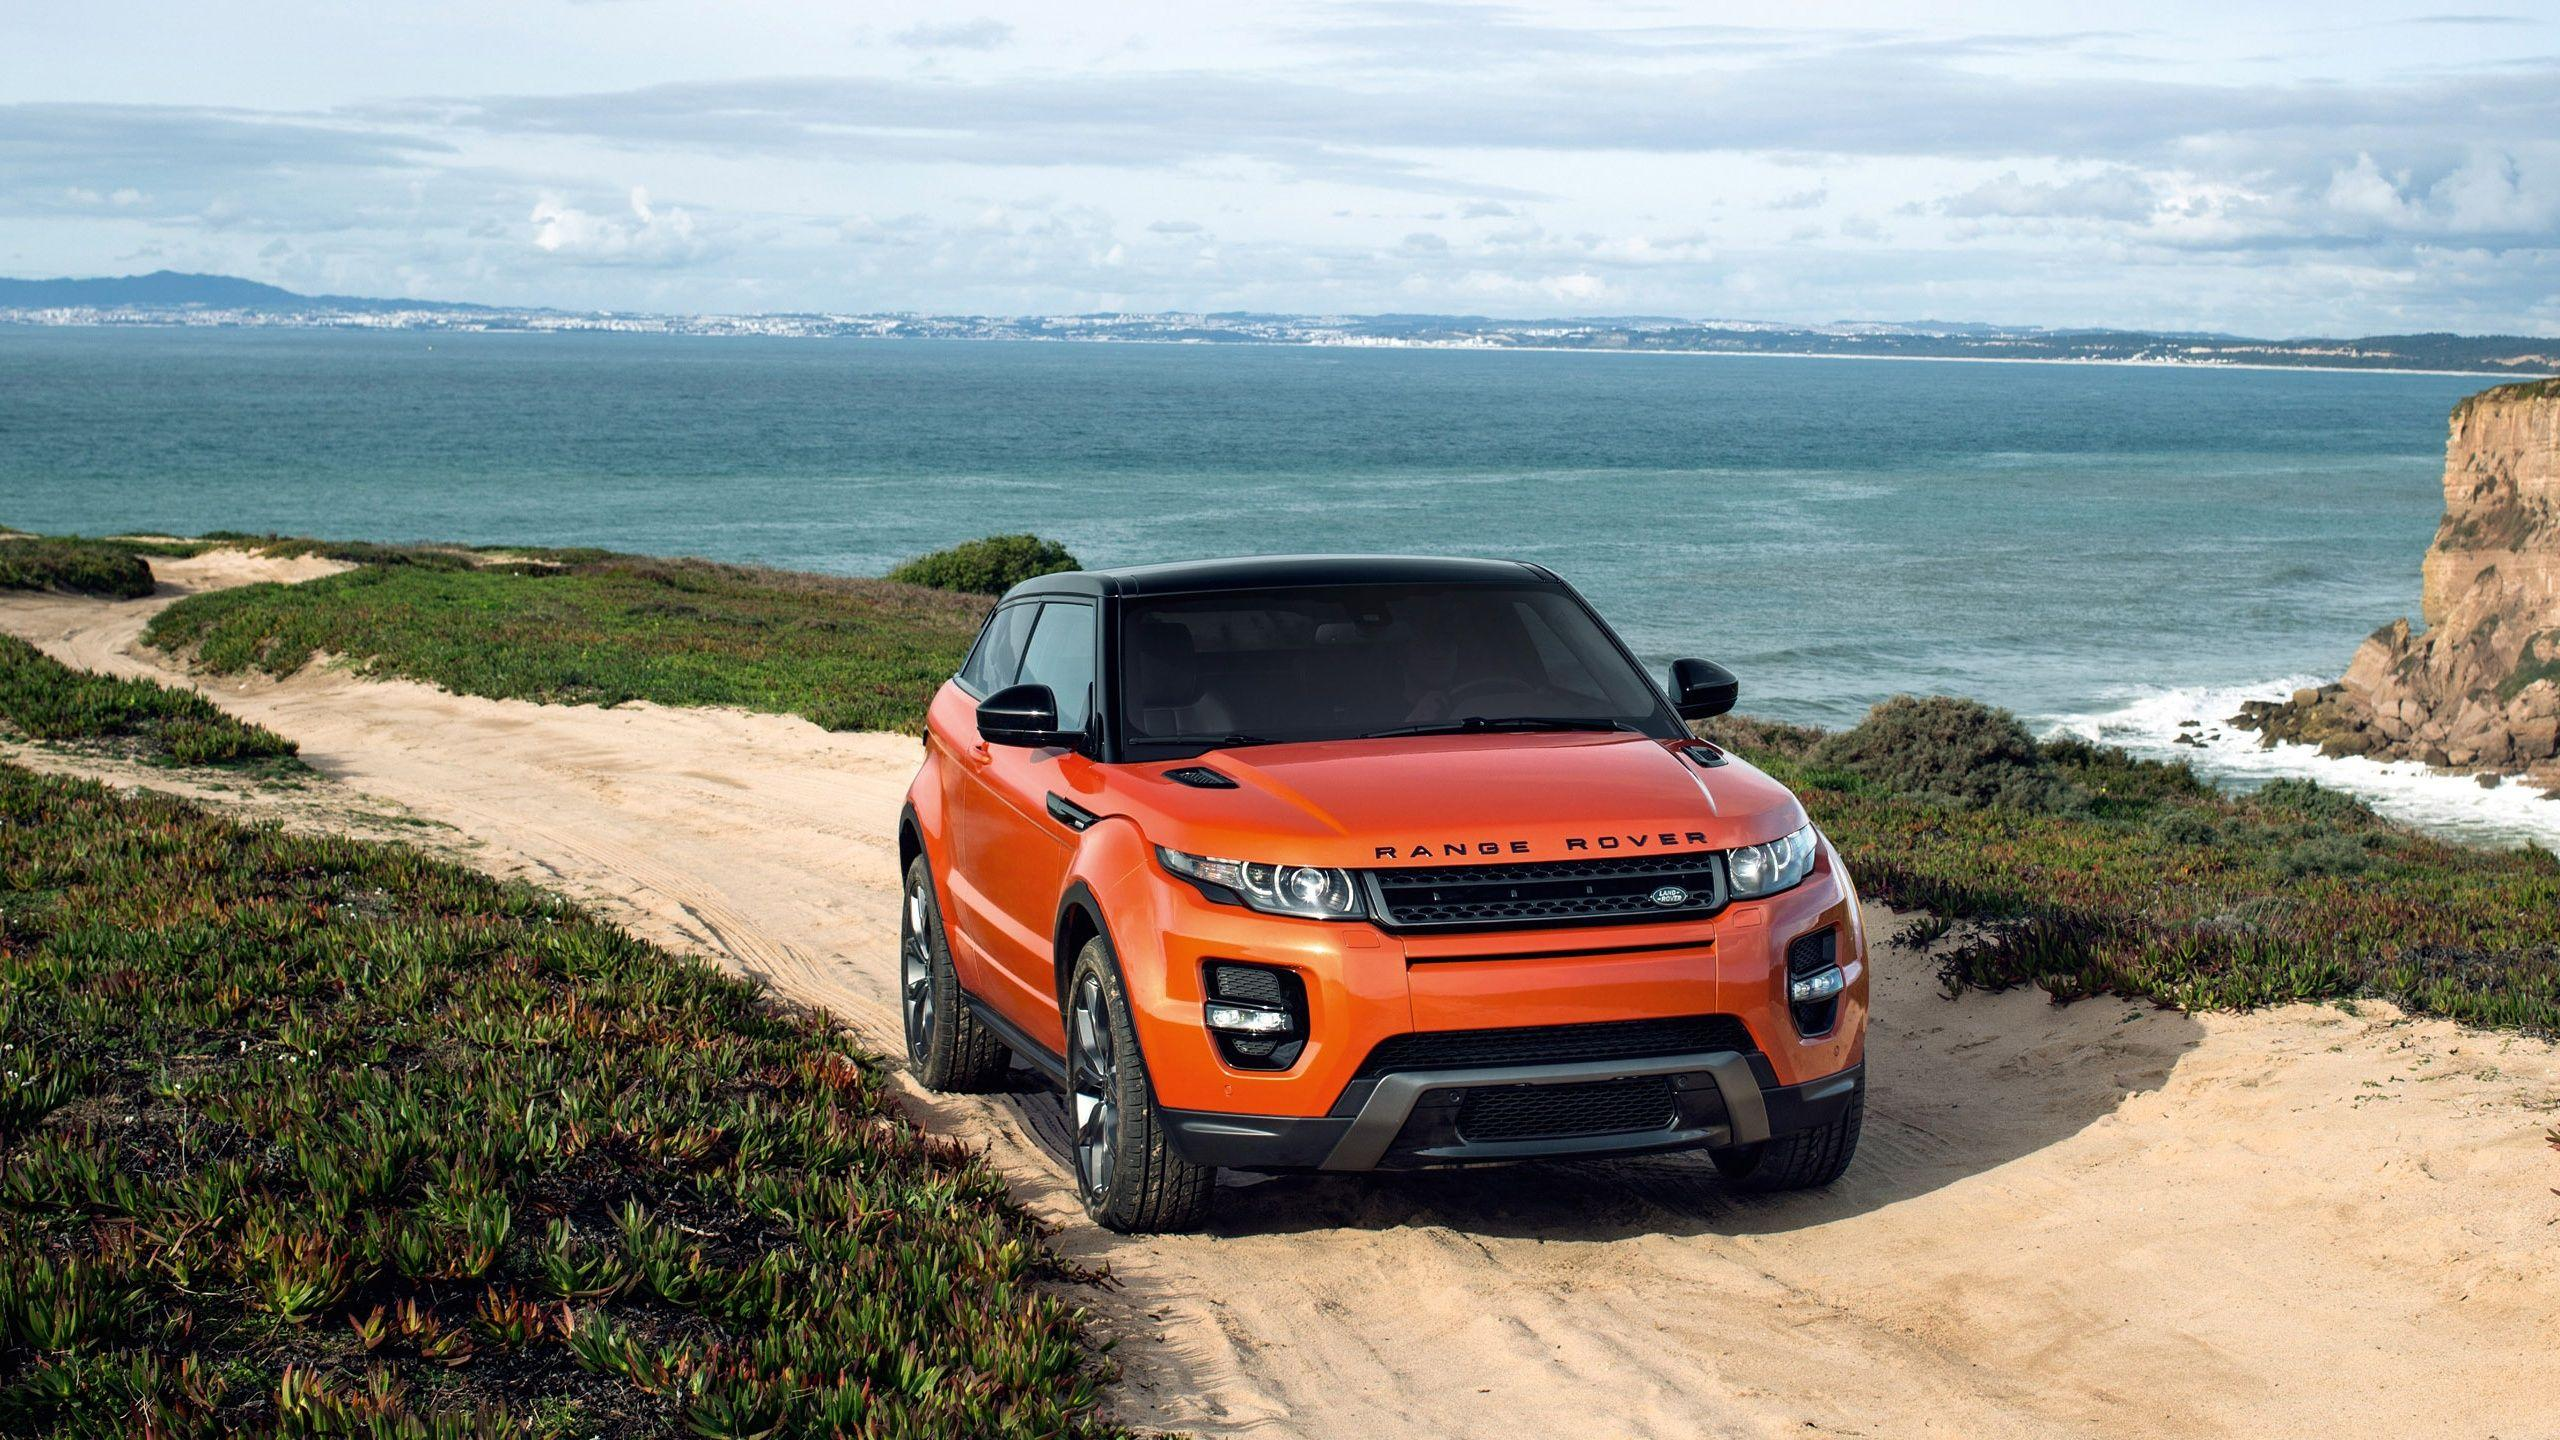 2014 Land Rover Range Rover Evoque Autobiography Dynamic Wallpapers